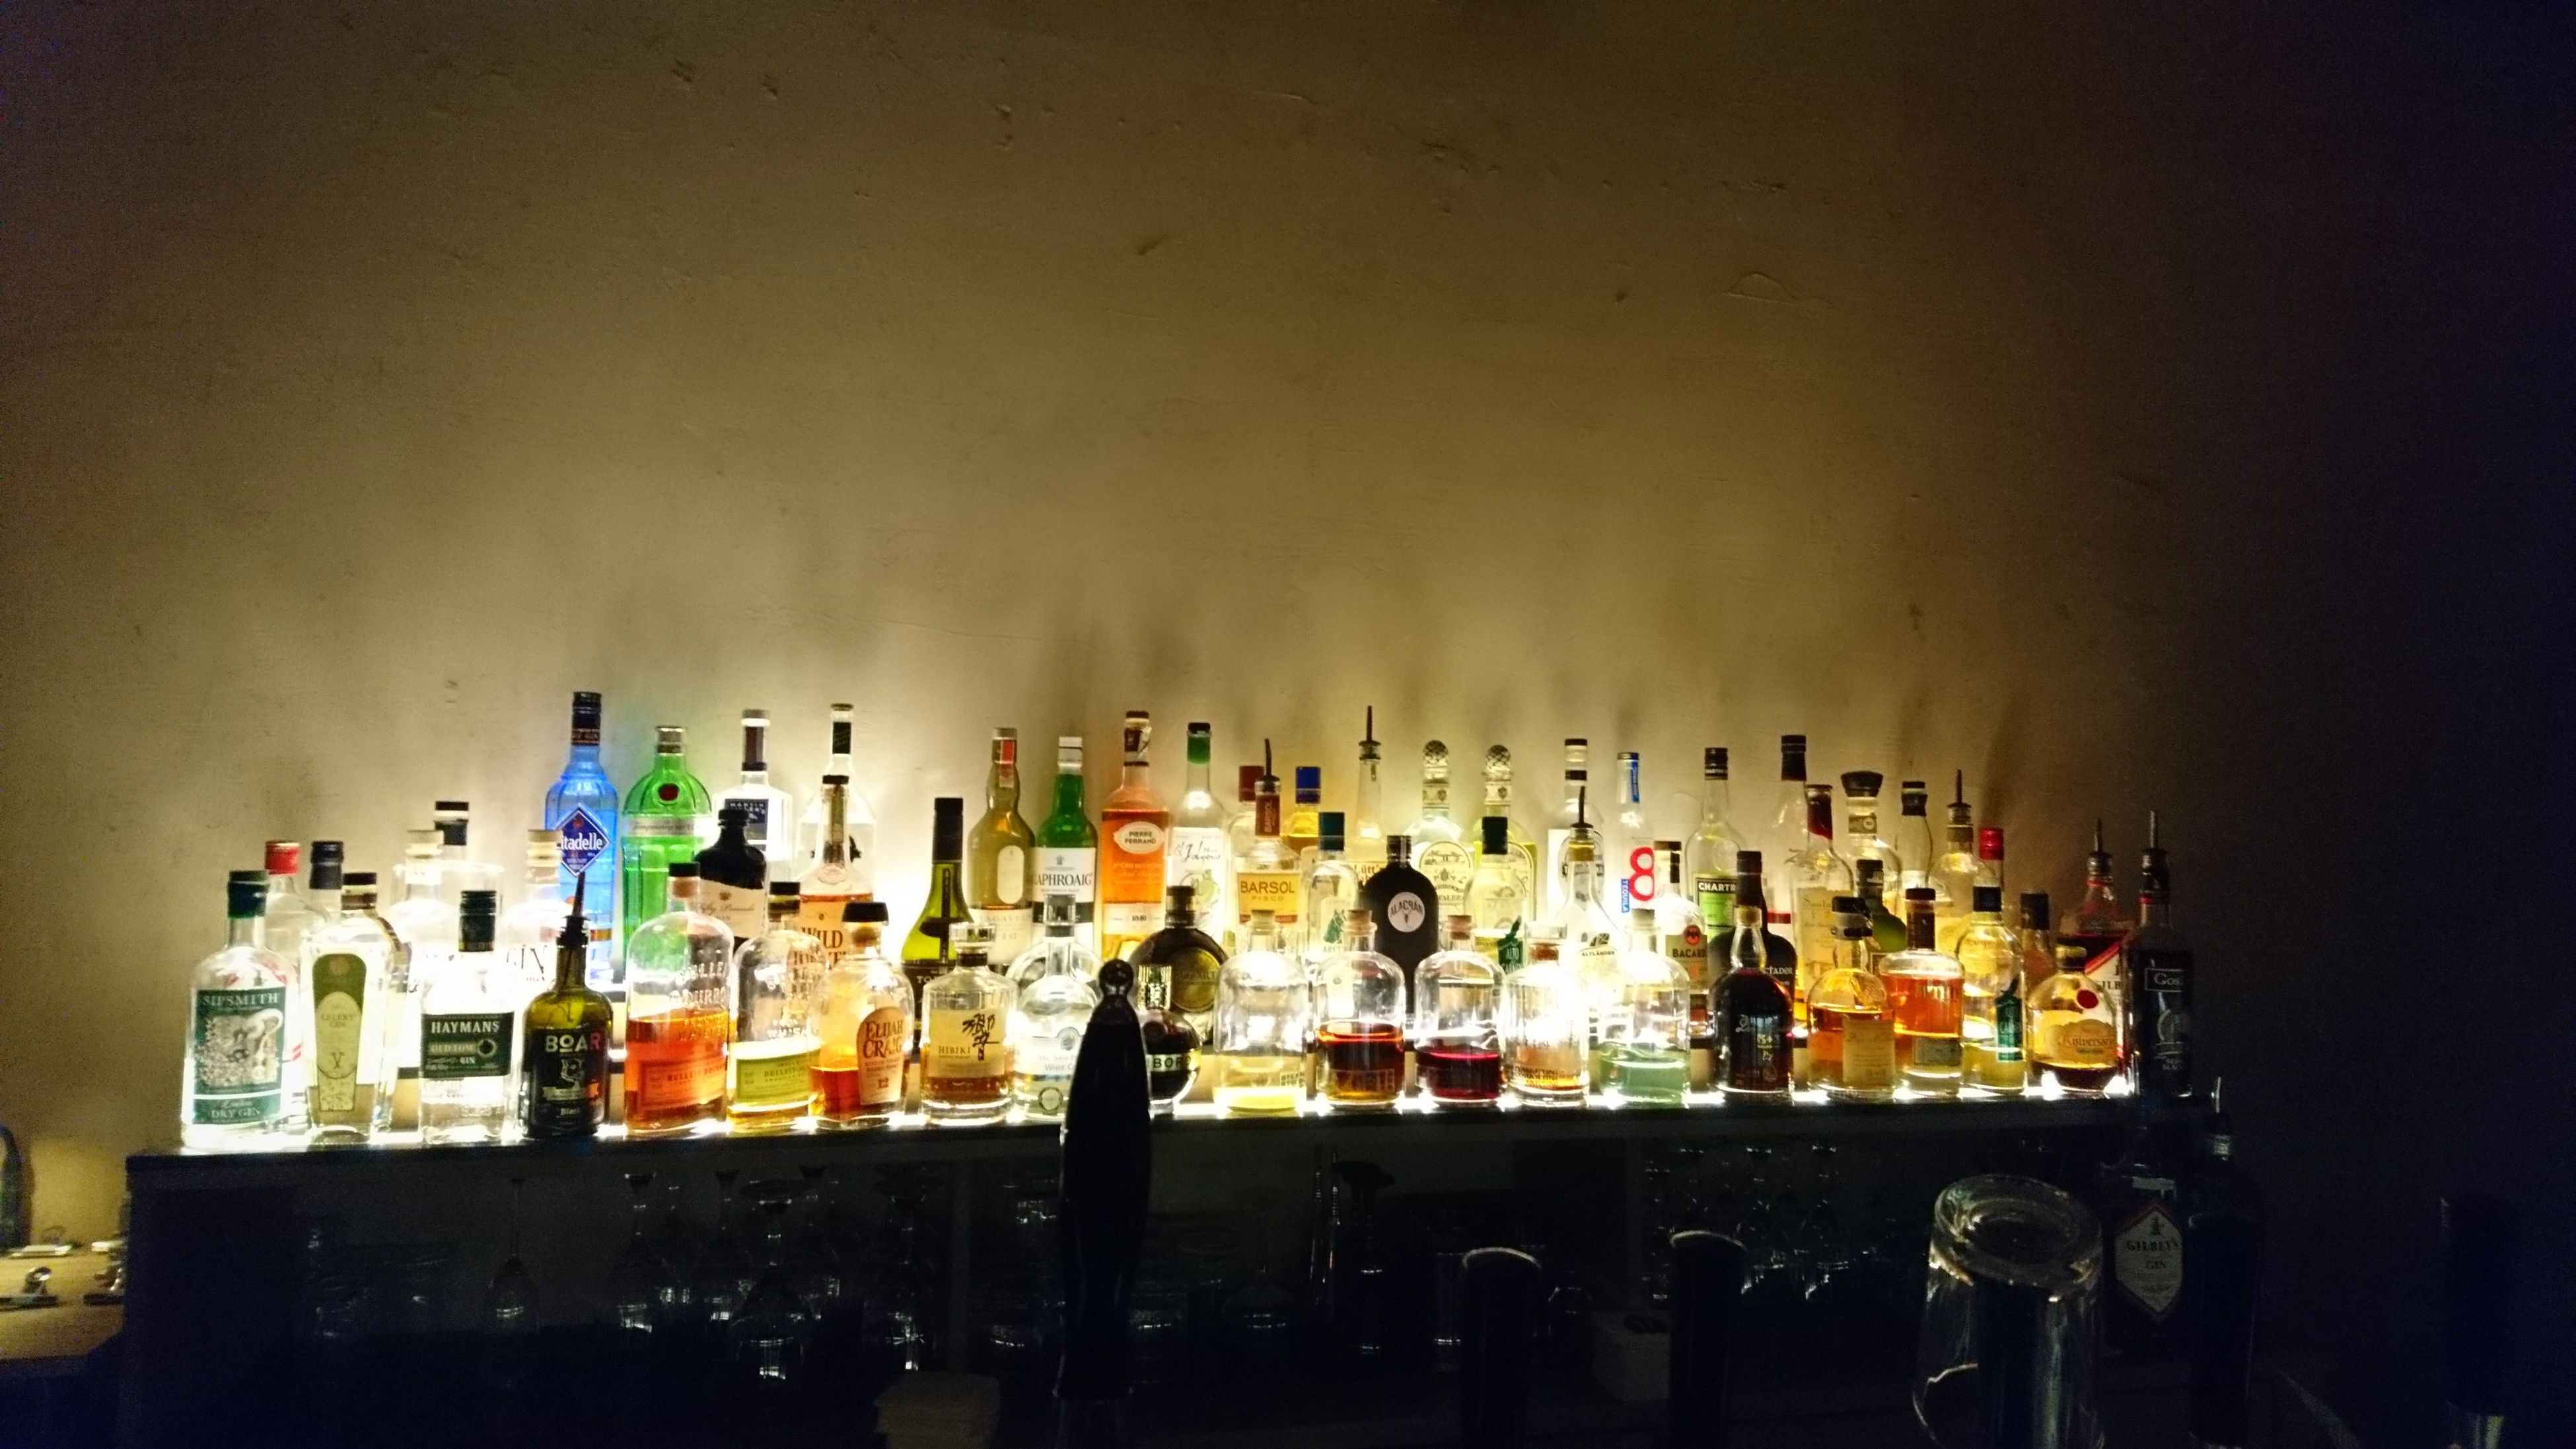 The Walrus bar. · Hamburg Germany Hh 040 Walrus Bar Stocked Bar Alcohol Drinks Good Drinks Strong Drinks Night Out Pleasure Light And Shadow Silhouette